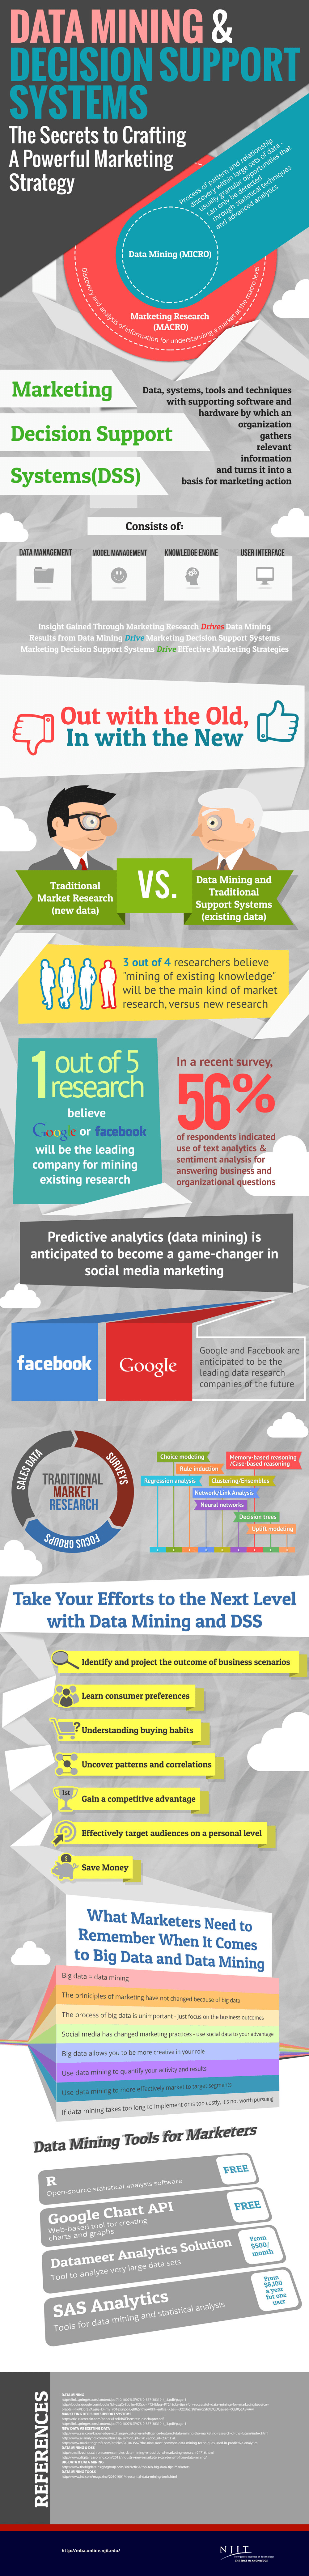 Infographic: The path to Big Data - Challenges and Opportunities